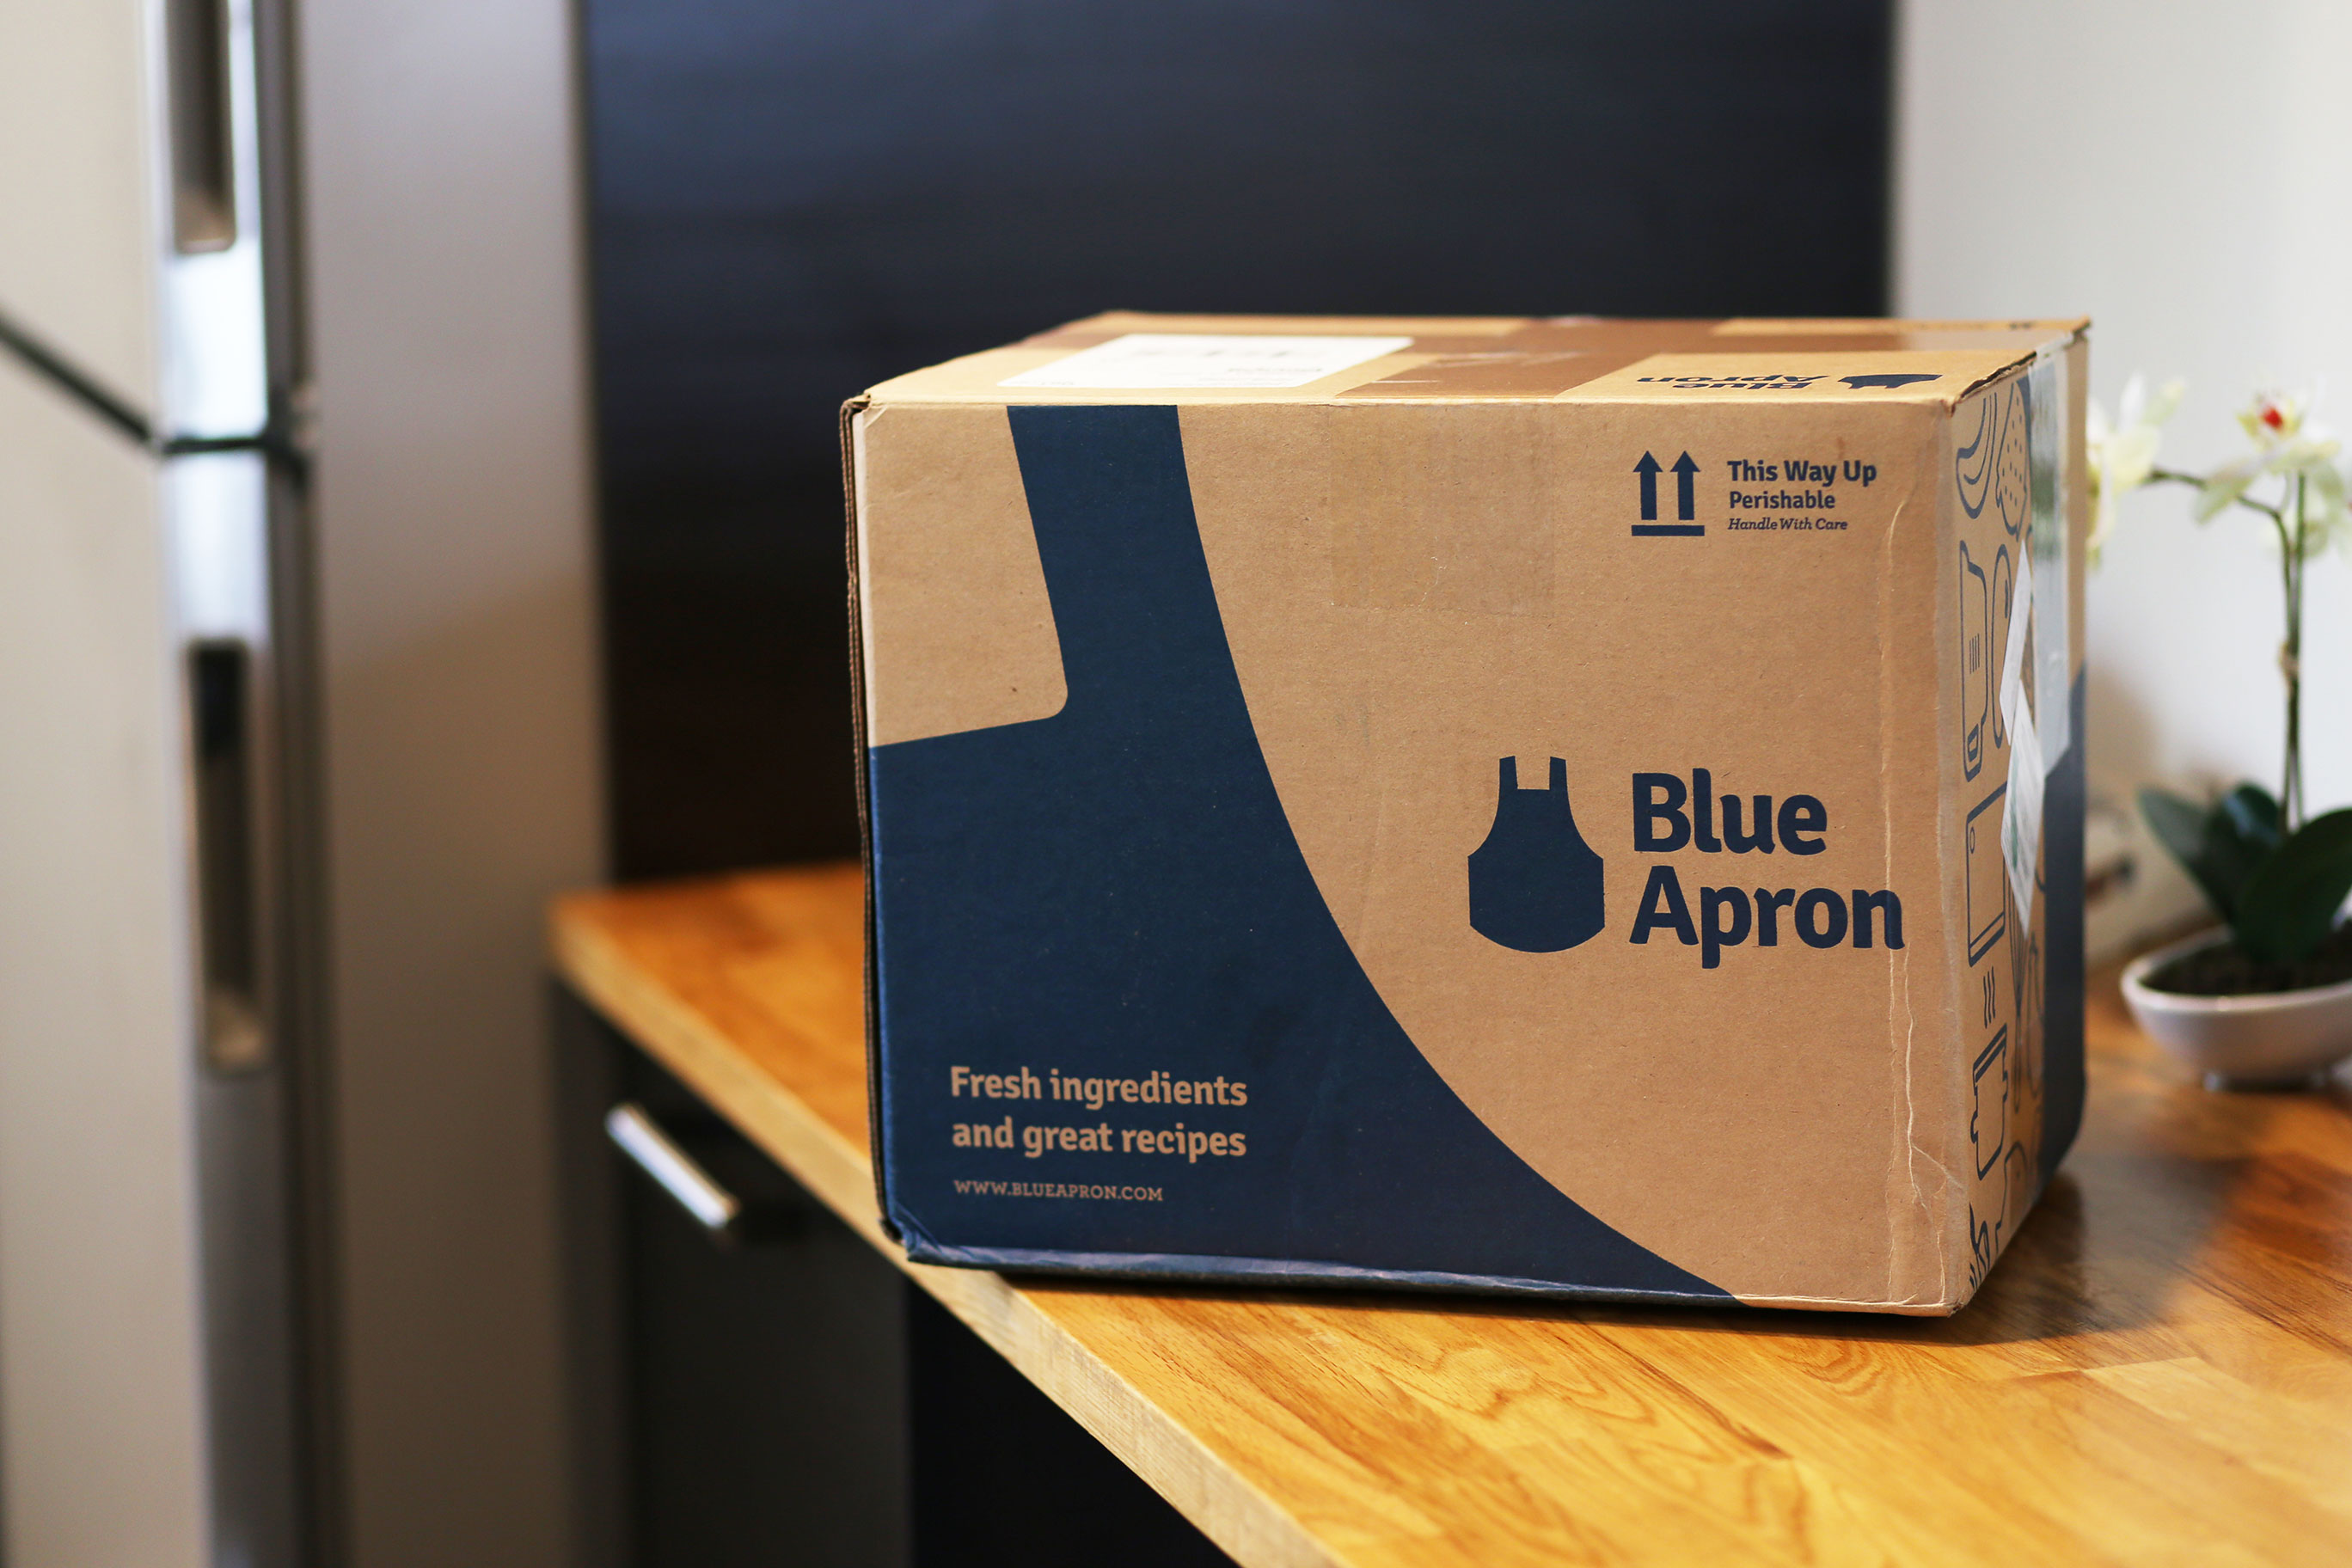 Blue apron working conditions - Blue Apron 6